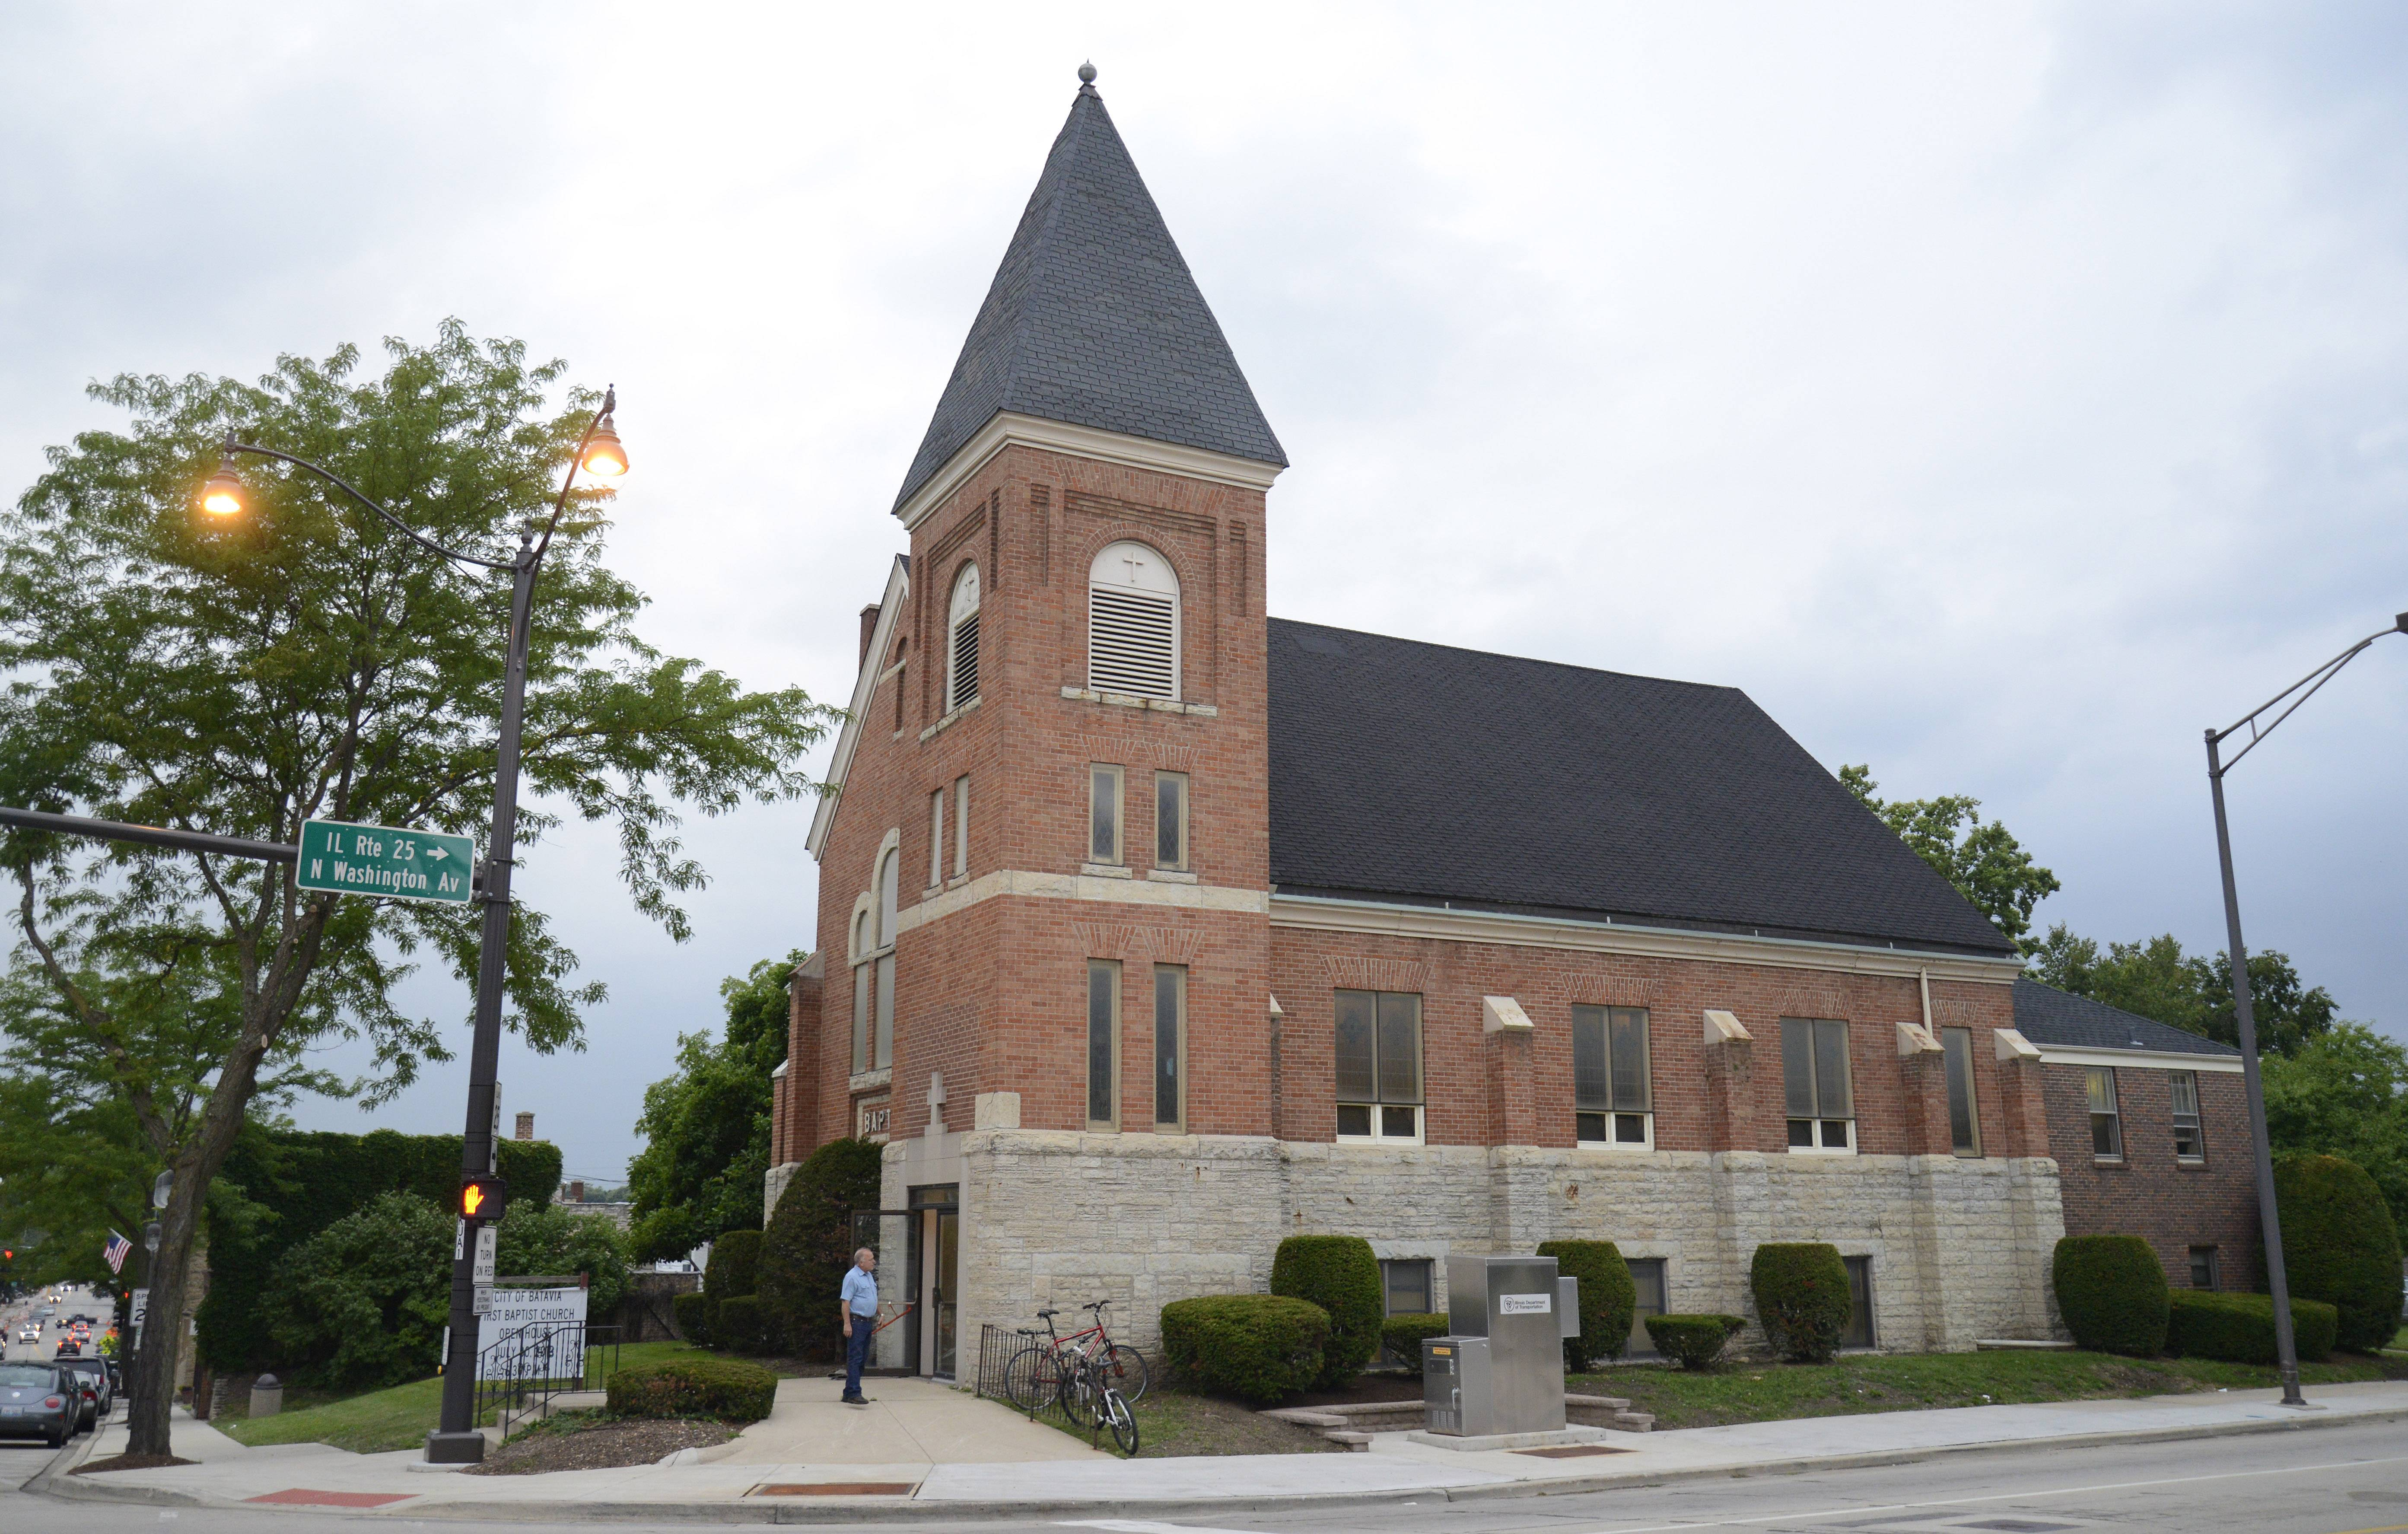 The former First Baptist Church in Batavia would be torn down as part of a plan to build apartments, a parking garage and stores at Wilson Street and Washington Avenue.